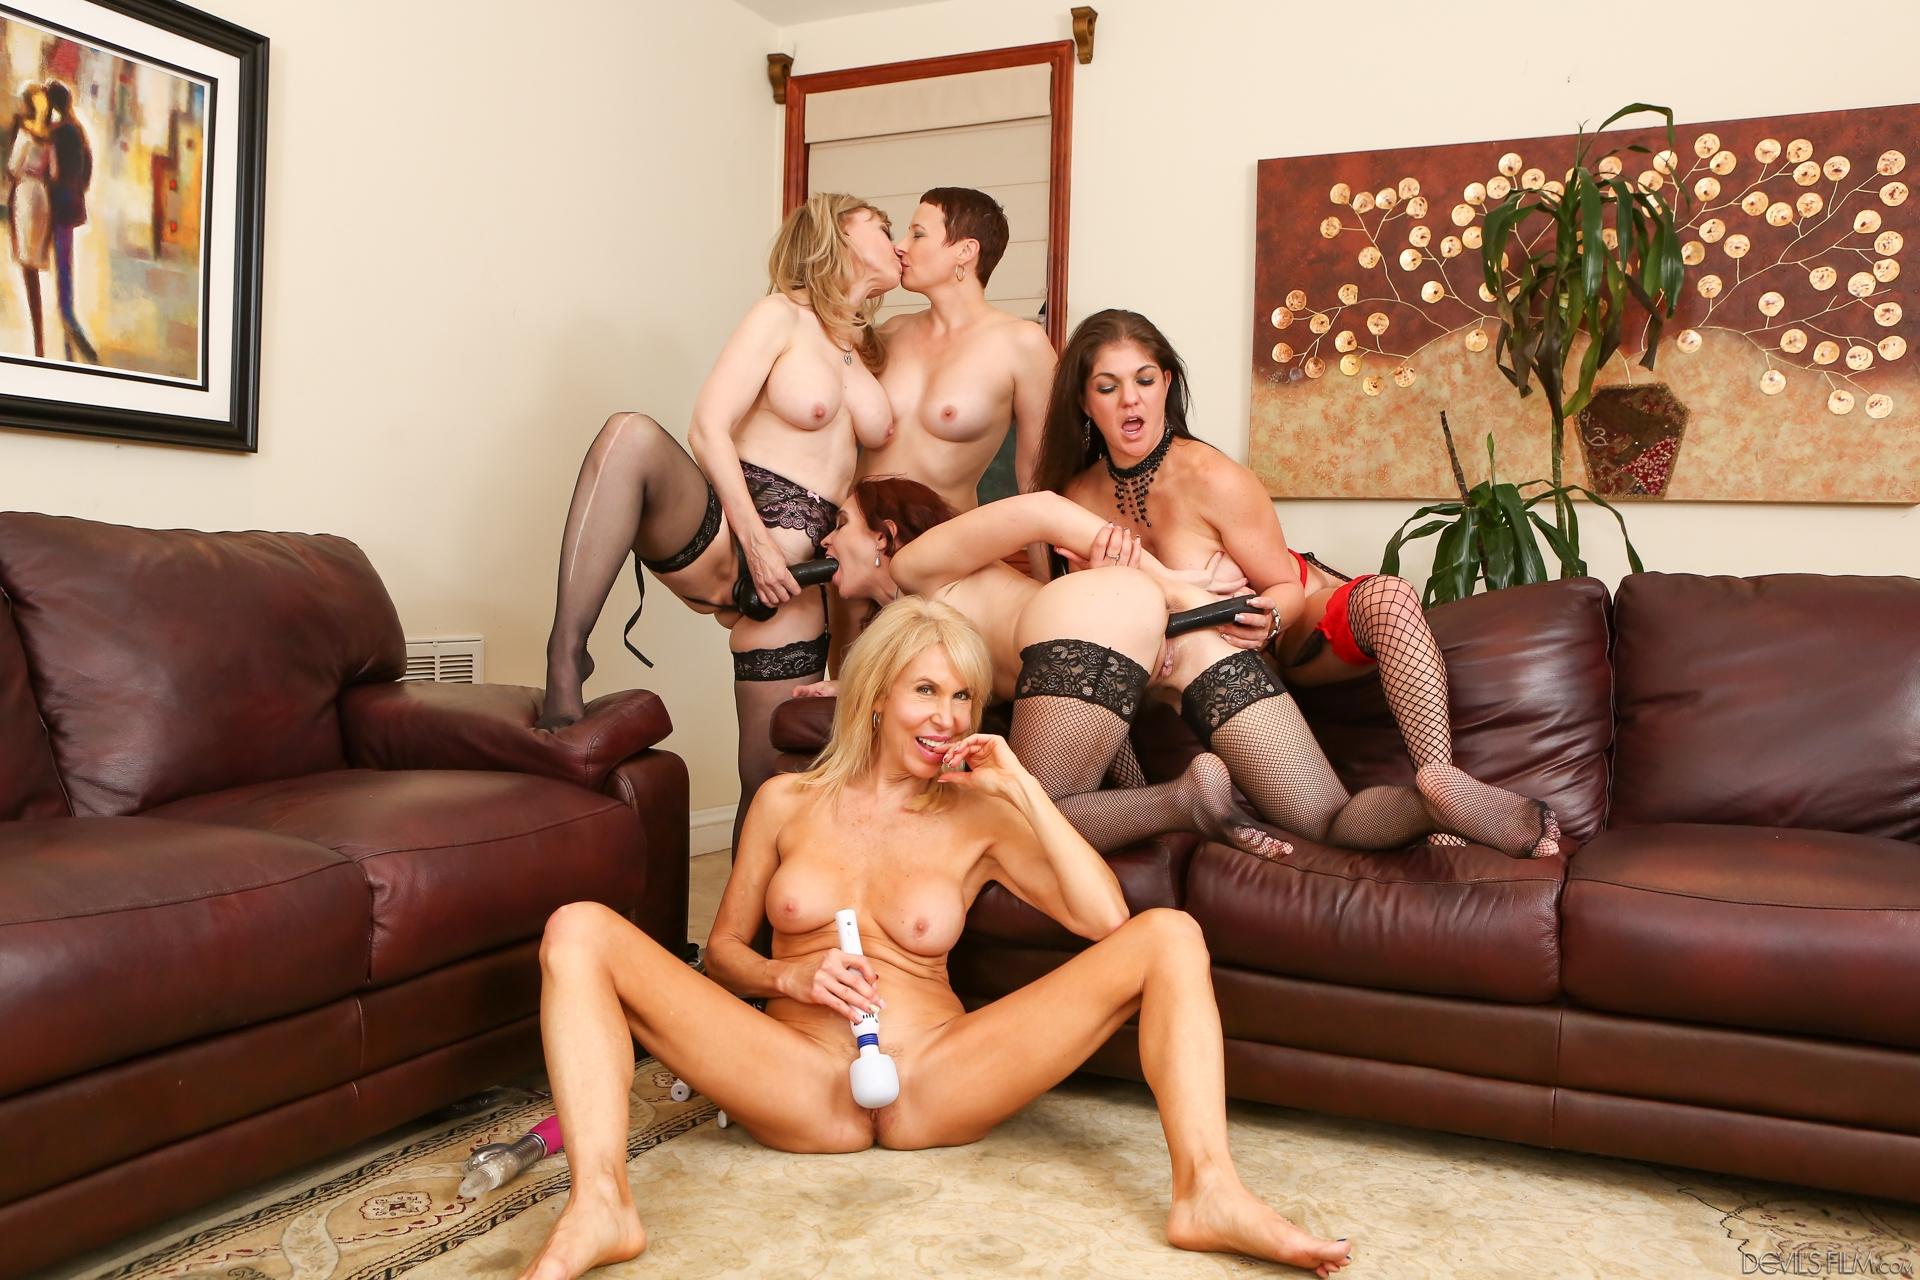 hot orgy in the aged of home starring 200 years of experienced old pussy